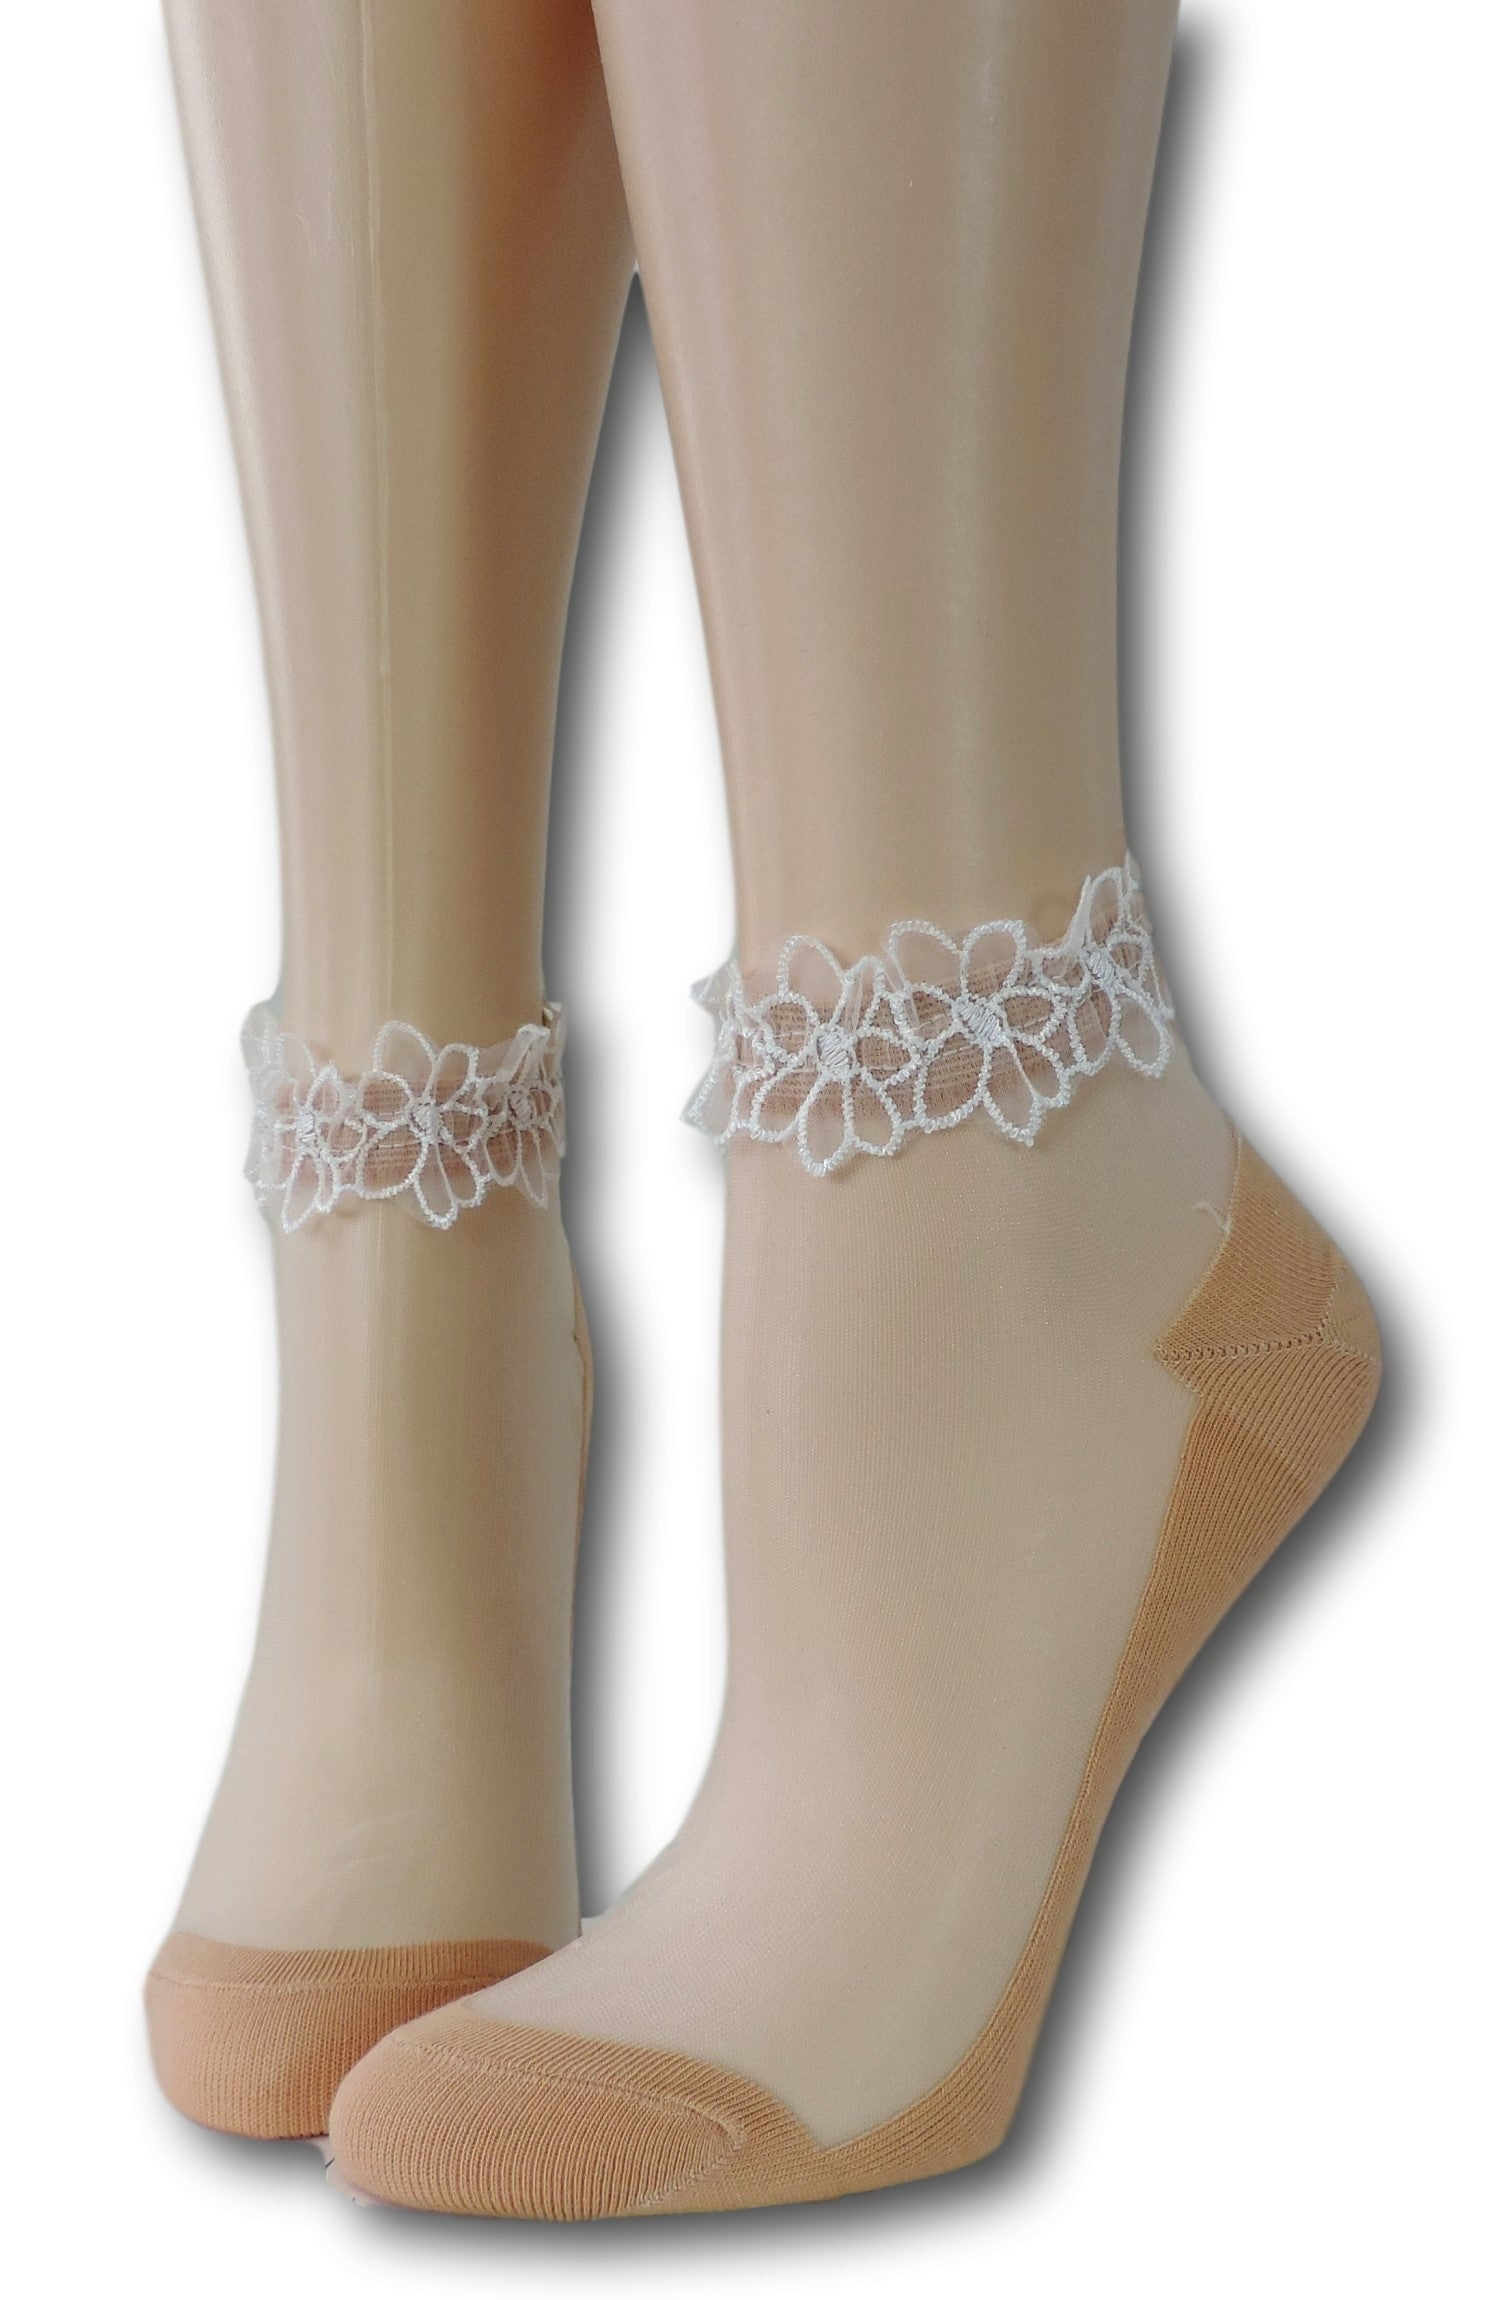 Cute Beige Ankle Sheer Socks